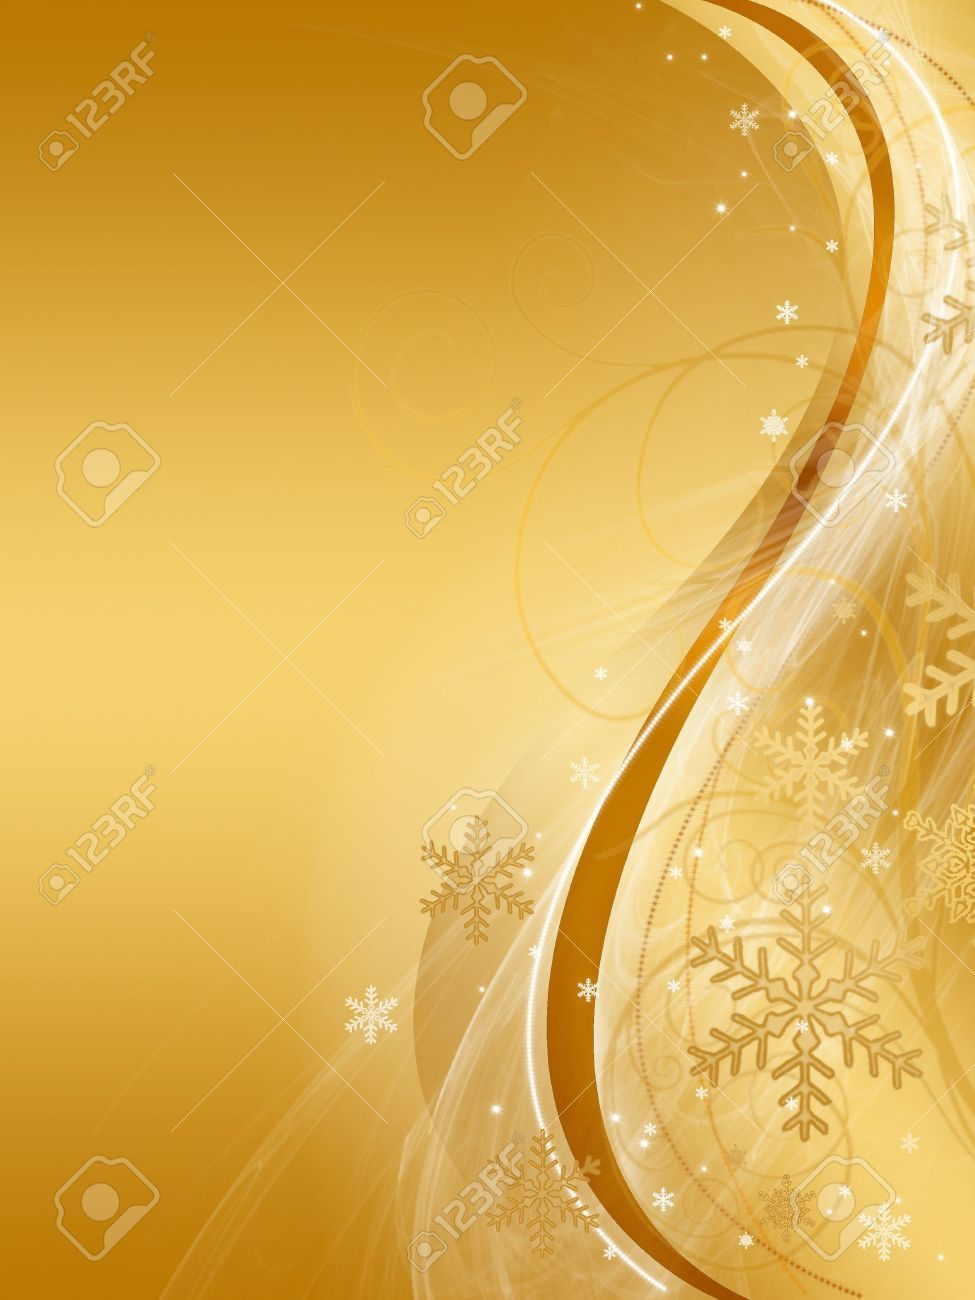 Christmas Background Images Gold.Stock Photo Christmas Backgrounds Christmas Background